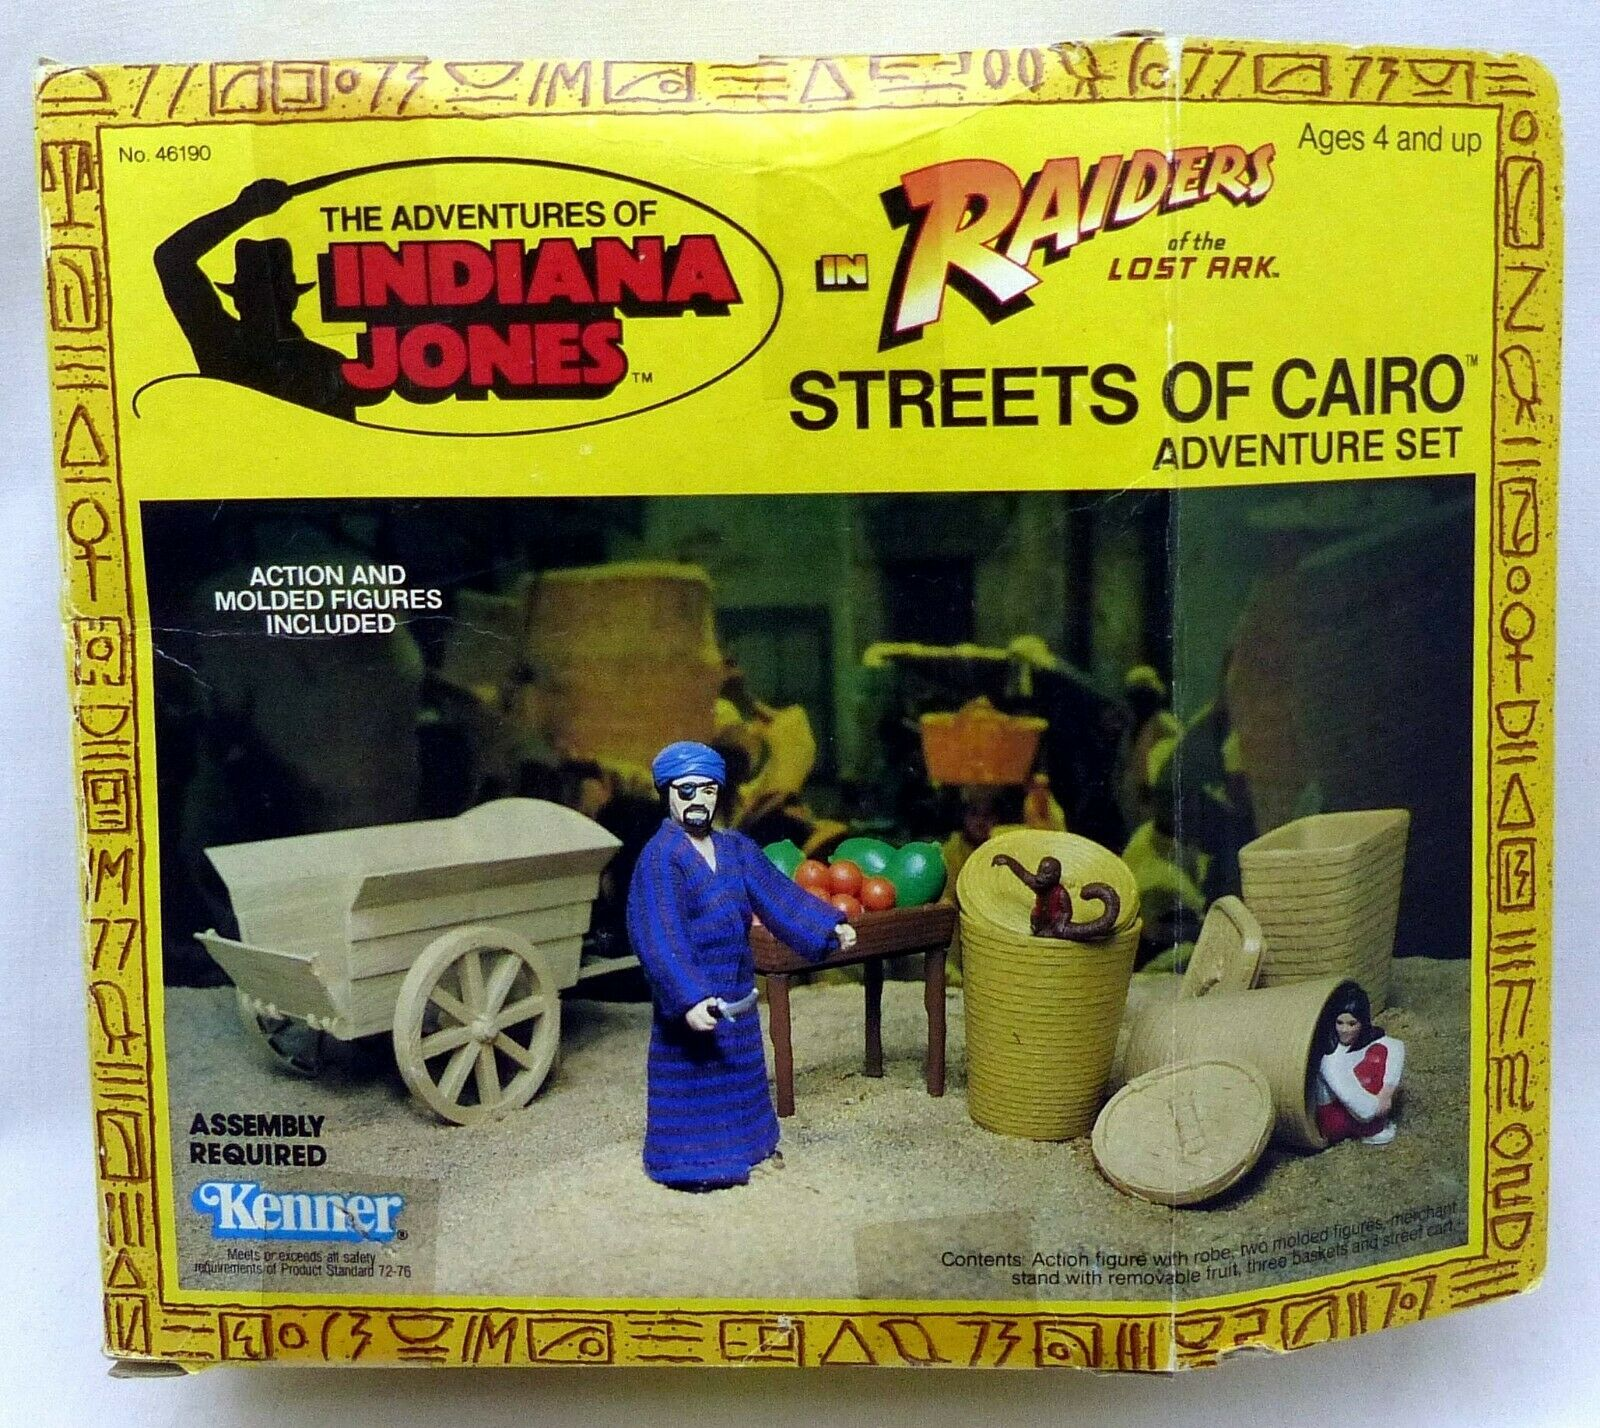 1982 UNOPENED INDIANA JONES RAIDERS LOST ARK STREETS OF CAIRO ADVENTURE SET